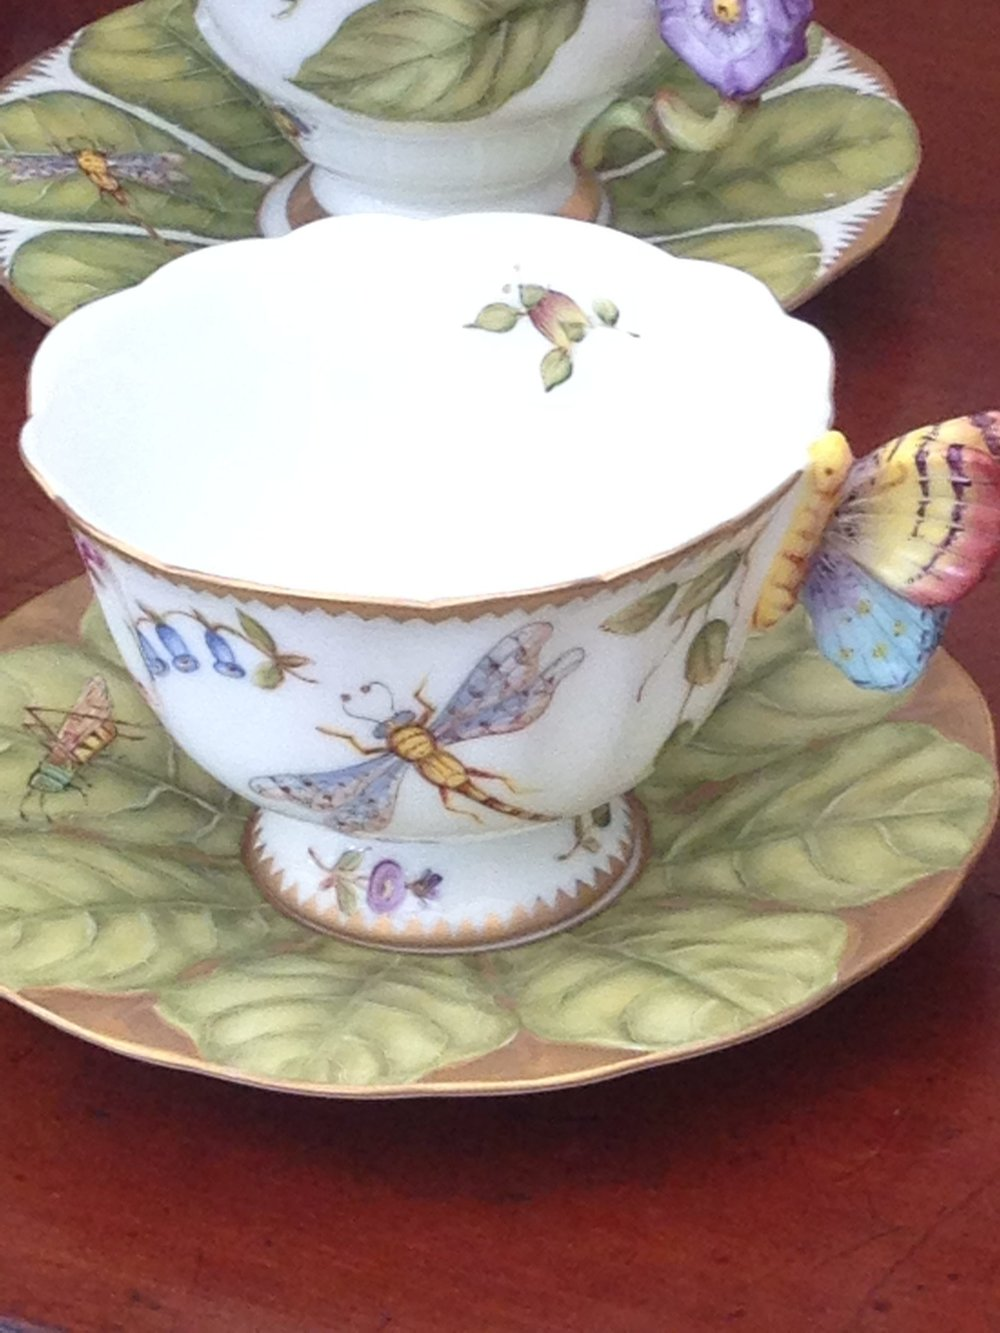 anna-weatherley-handpainted-teacup-at-250-half-of-retail-price-hand-painted-hungarian